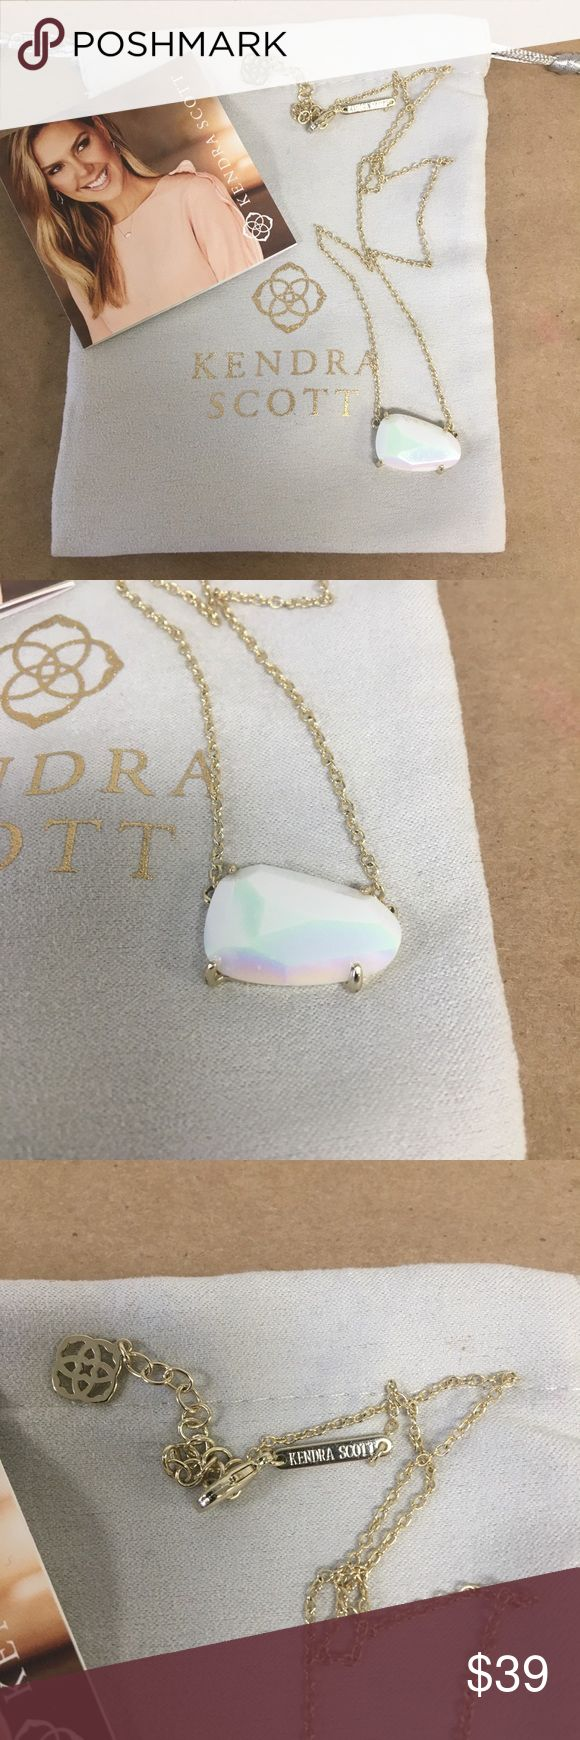 """Kendra Scott ISLA 18"""" Necklace in Gold & Pearl! Kendra Scott ISLA 18"""" Necklace in Gold & Ivory Mother Of Pearl! Inventory #  6221-8 Everything we sell is 100% guaranteed authentic! We list dozens of items every day, so check our other listings out! We are Meta Exchange, a resale store in Baton Rouge, LA! Sorry, no trades. REASONABLE offers will be considered. We ship same/next day. Thanks! Follow us: FB metaexchange  IG meta225 Kendra Scott Jewelry Necklaces"""